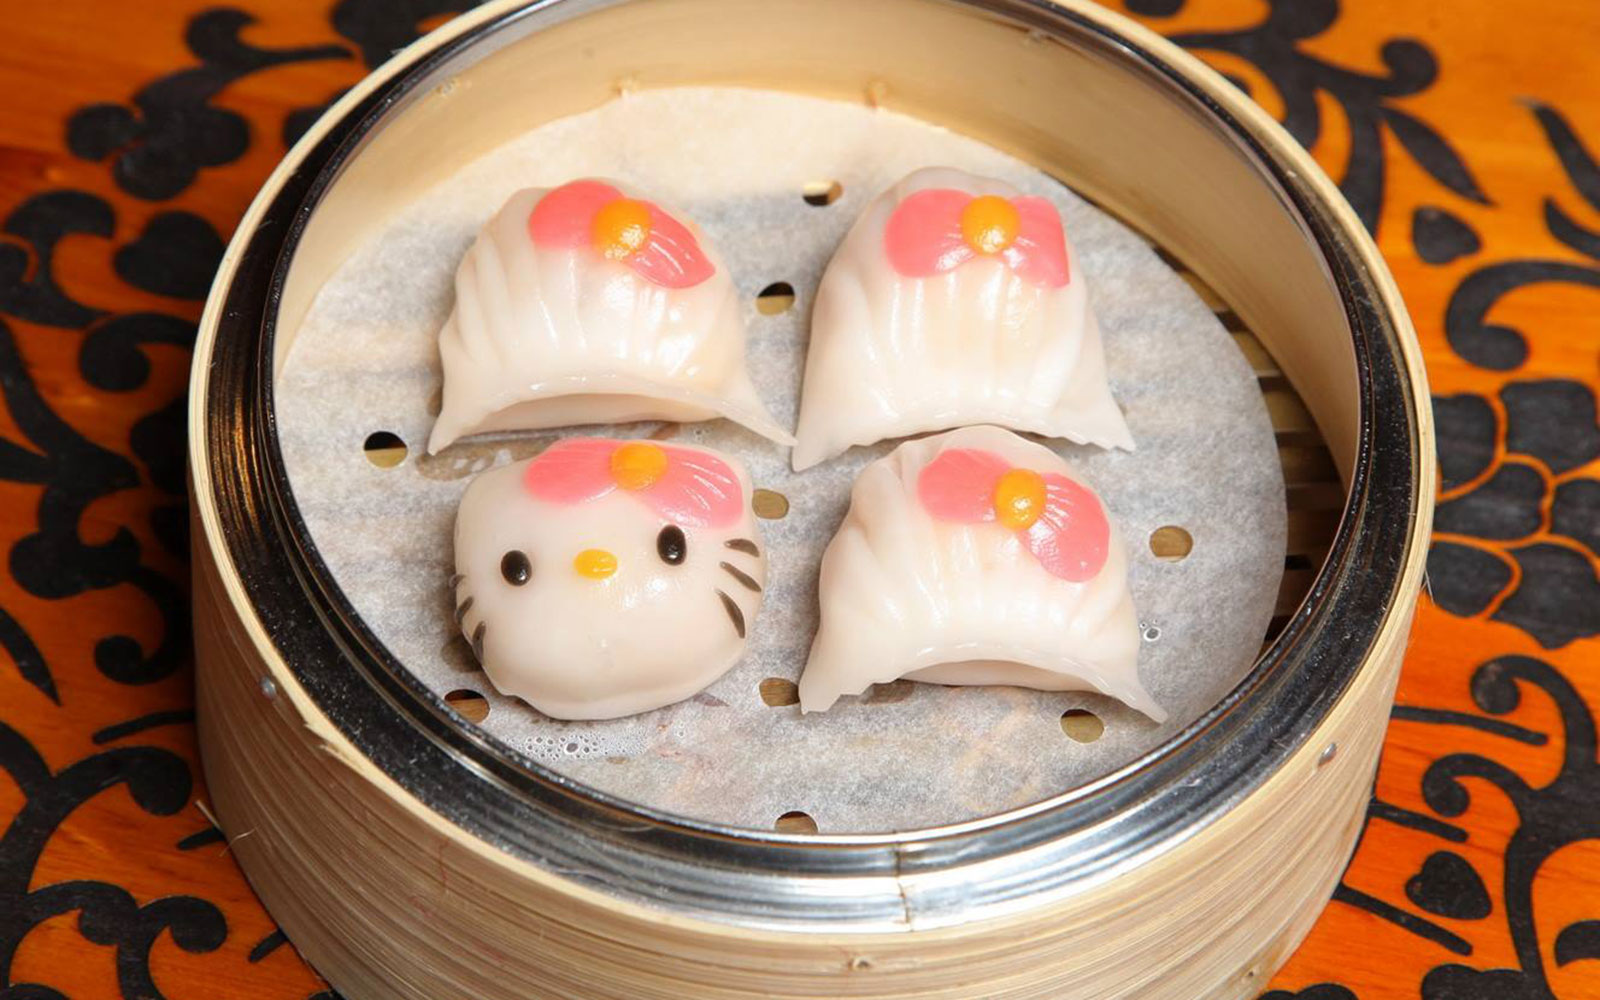 hellokitty0515-dumplings.jpg